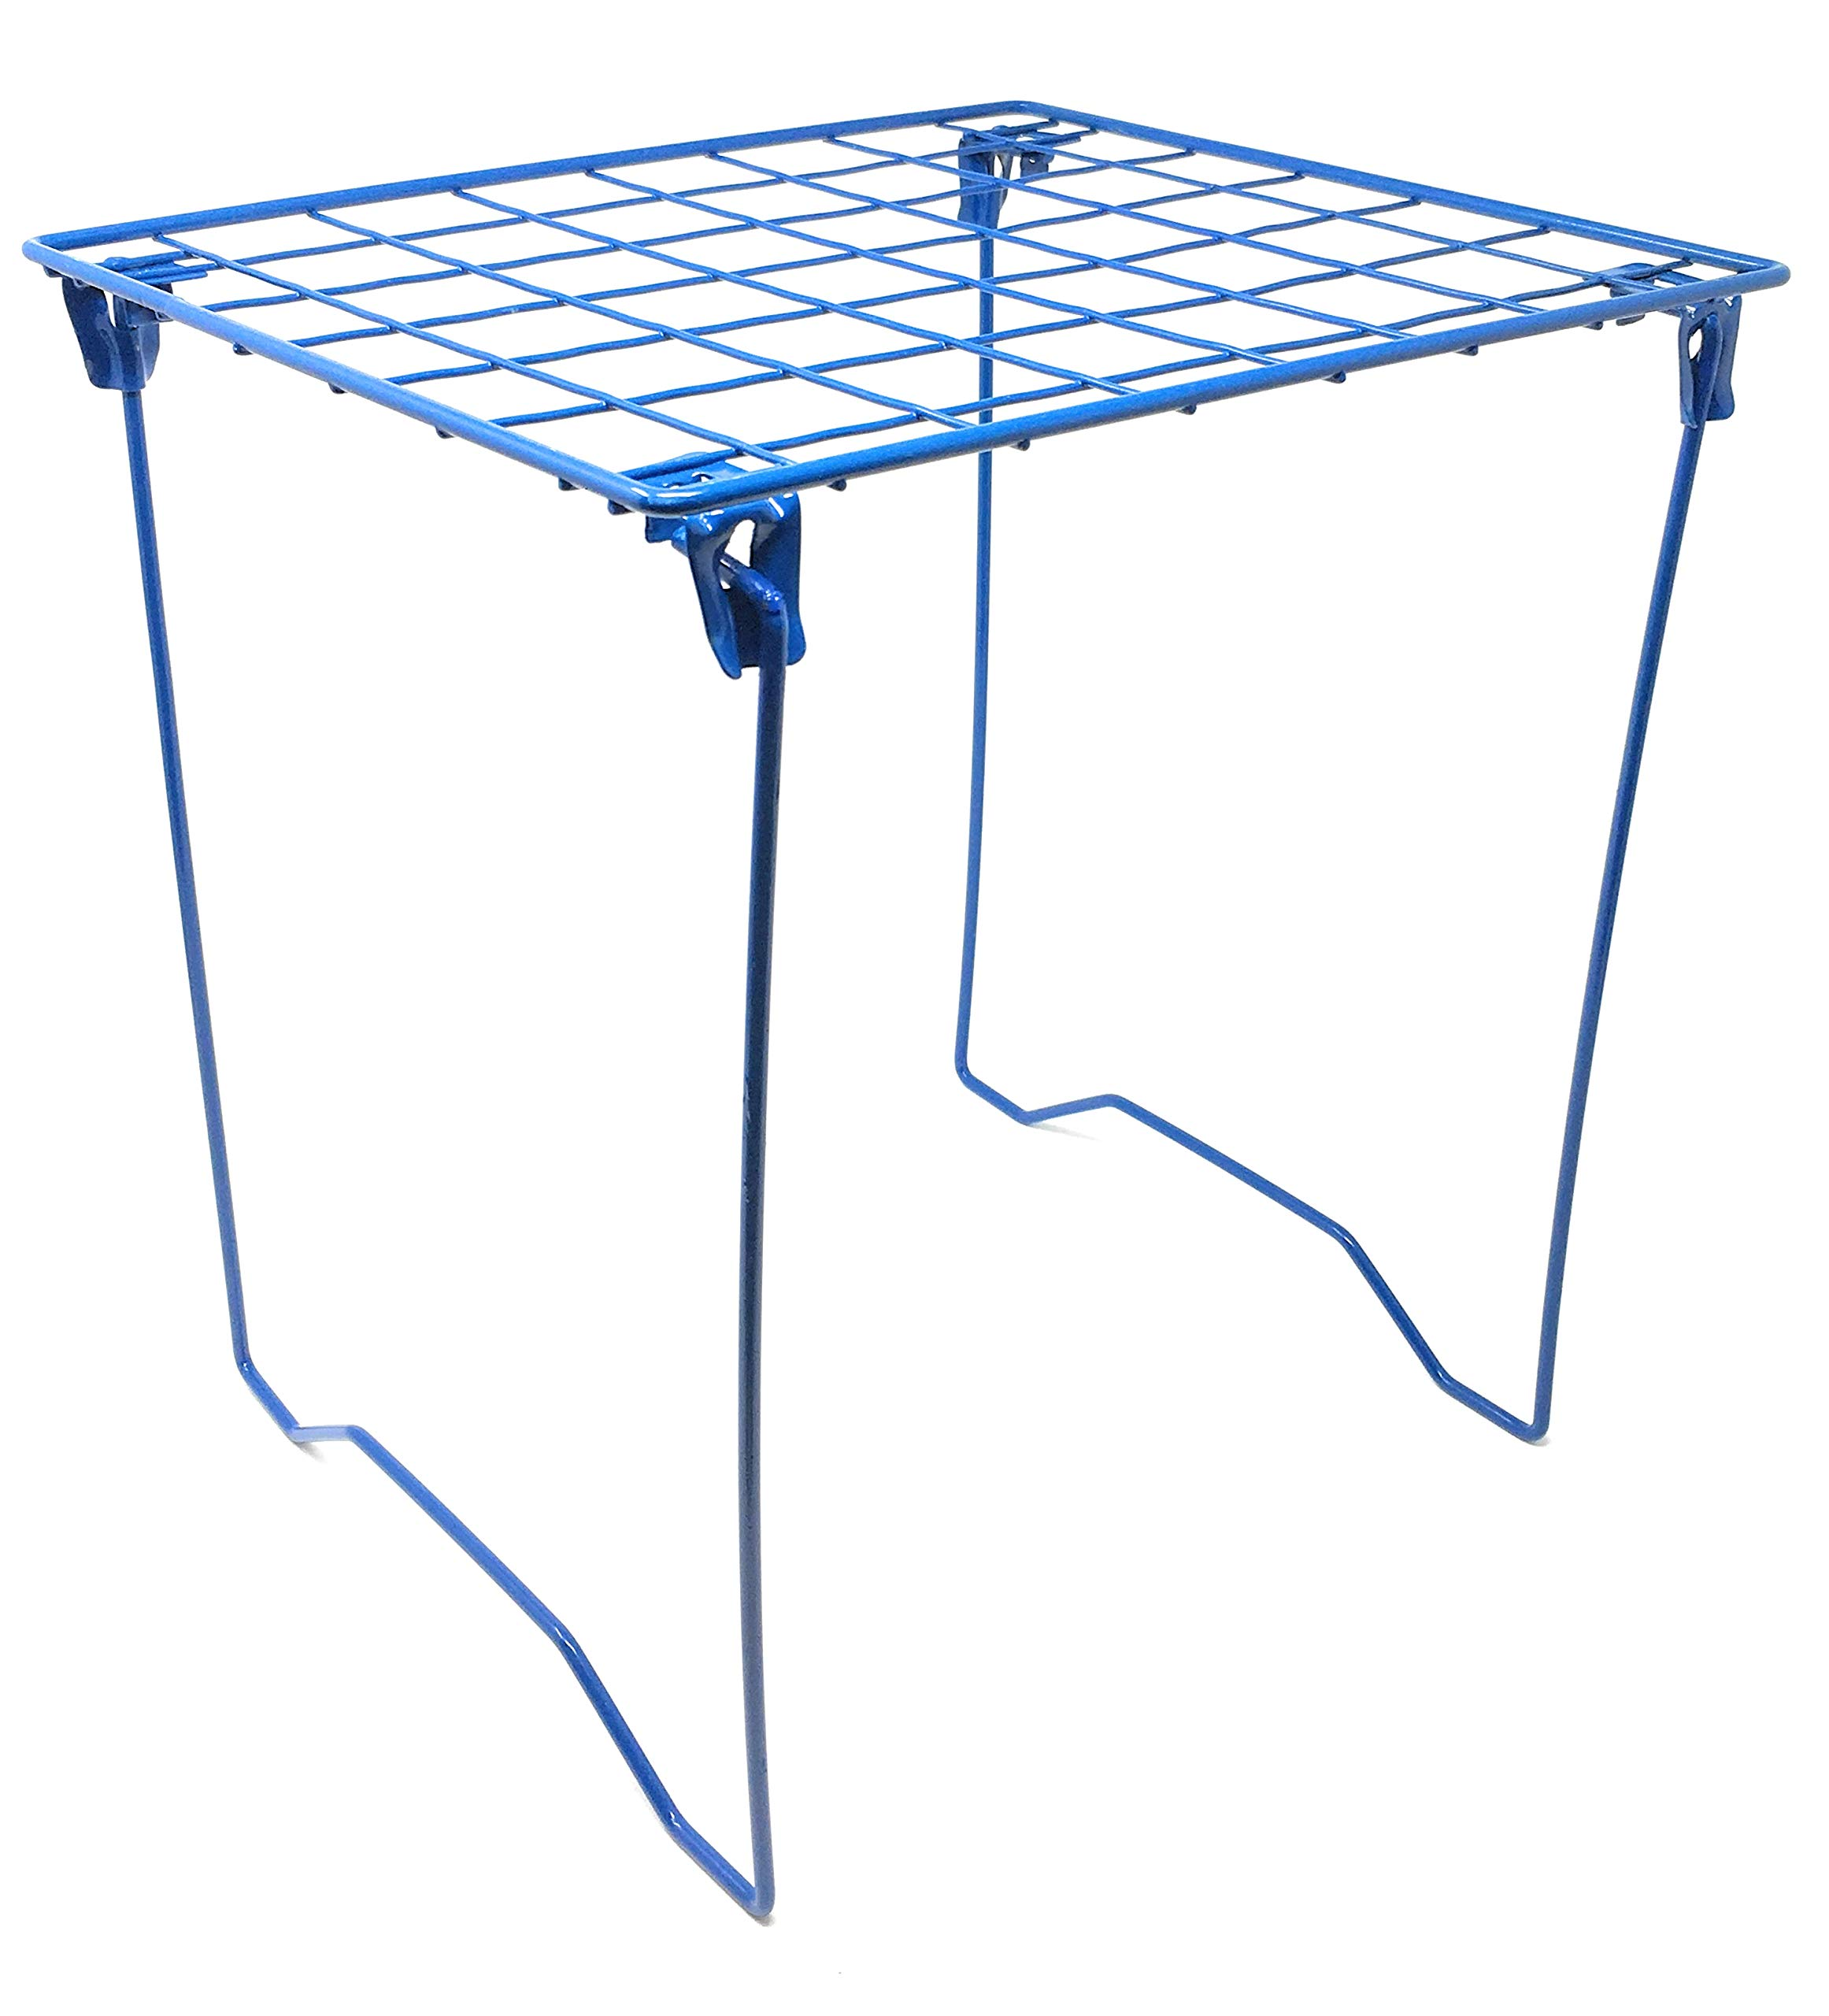 Bright Blue Locker Shelf - Foldable Stac Mate Shelf for Office, Home or School